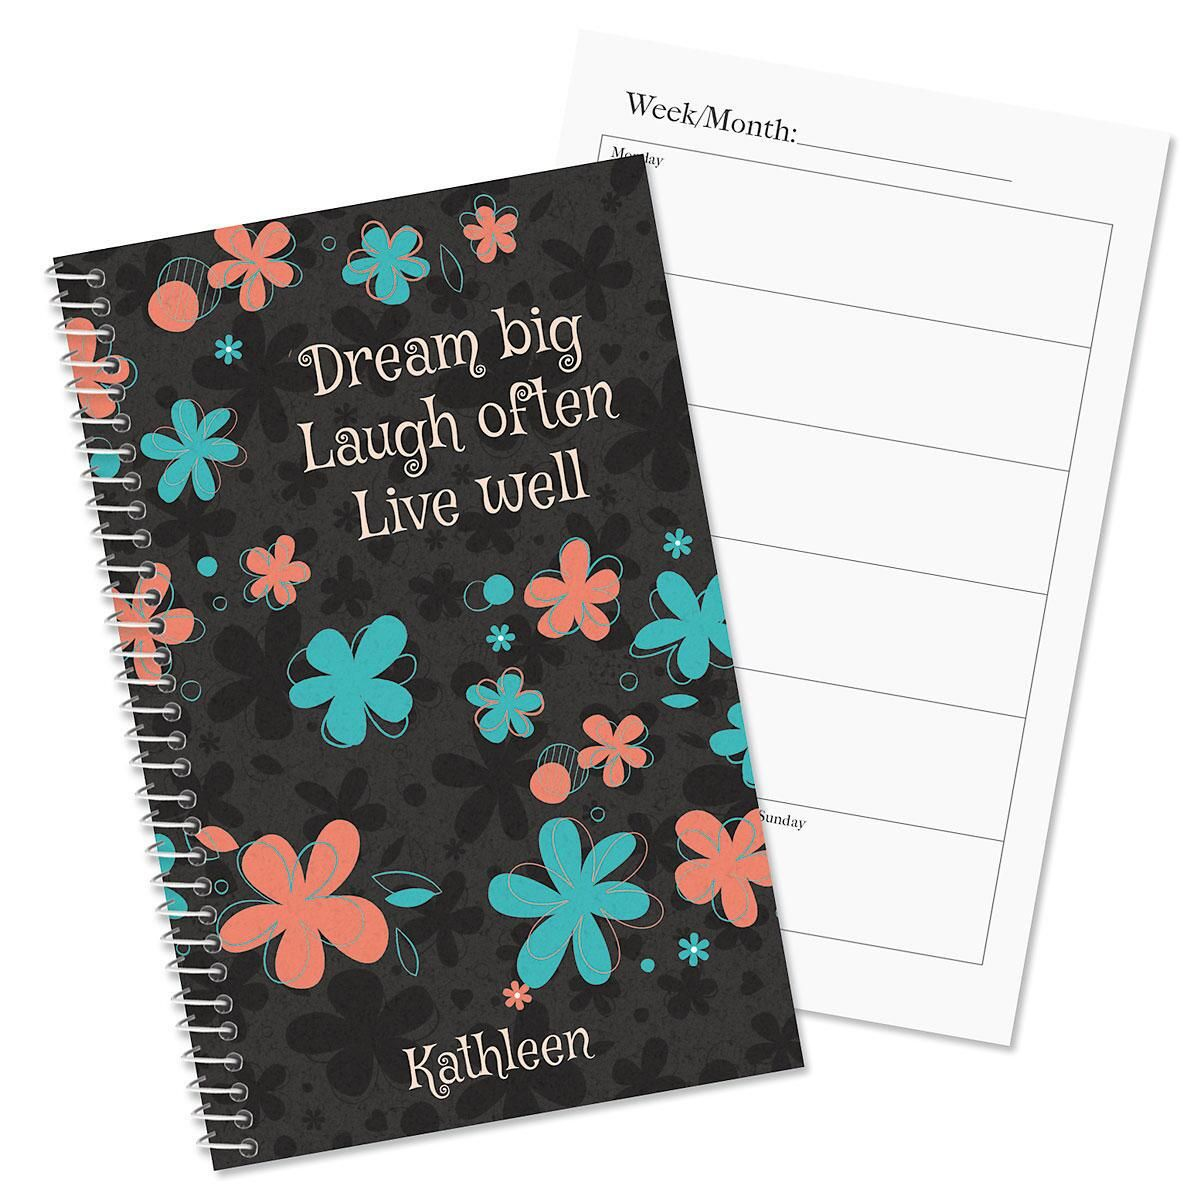 Flourish personalized planner colorful images for Custom photo planner